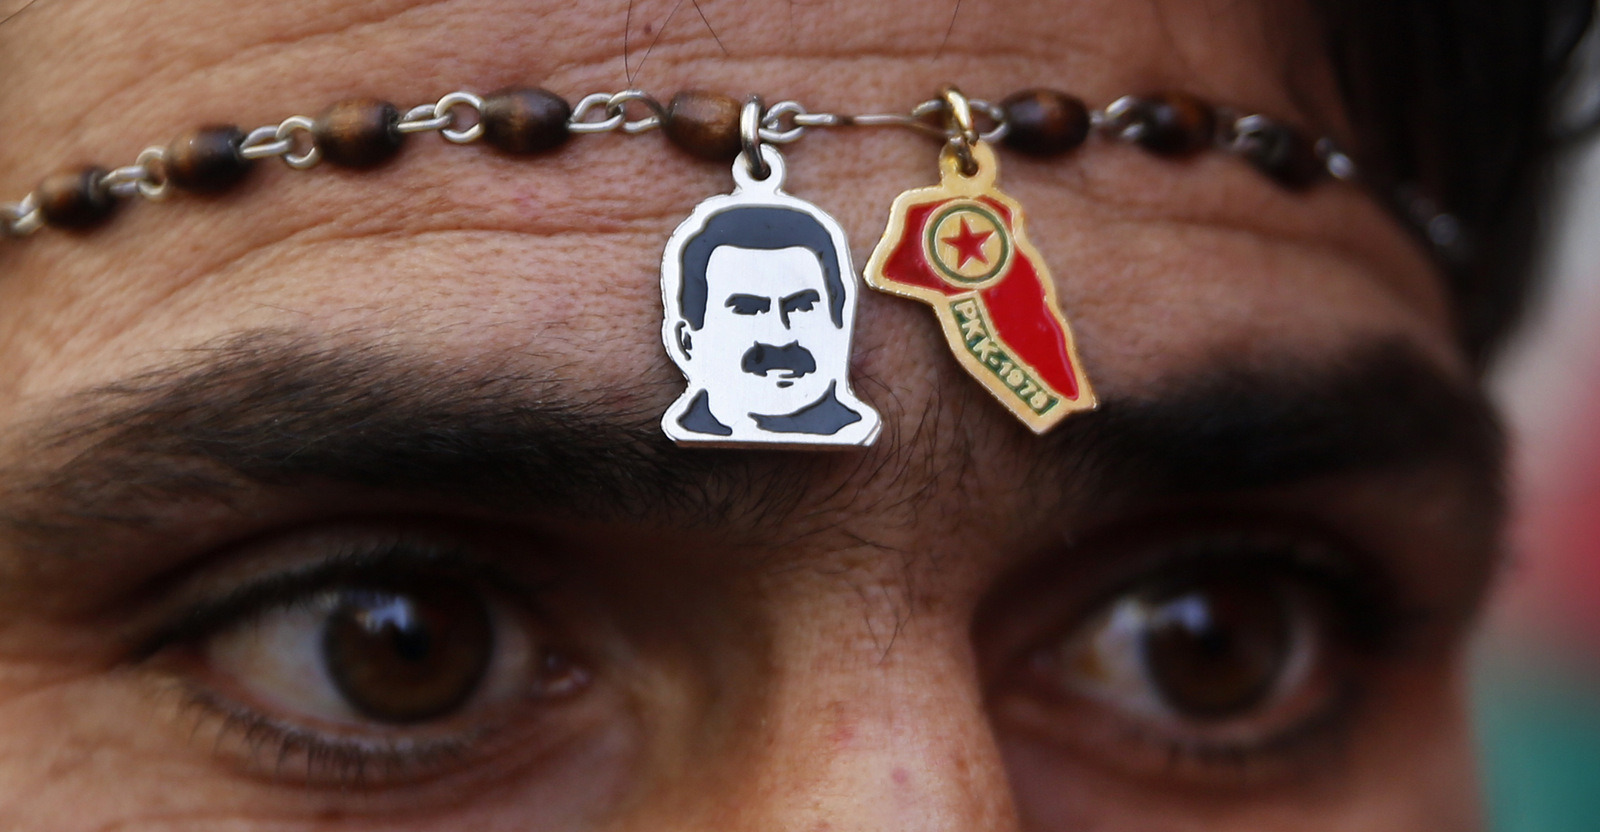 Kurds, Out of Options, Look to Syria's Assad for Help